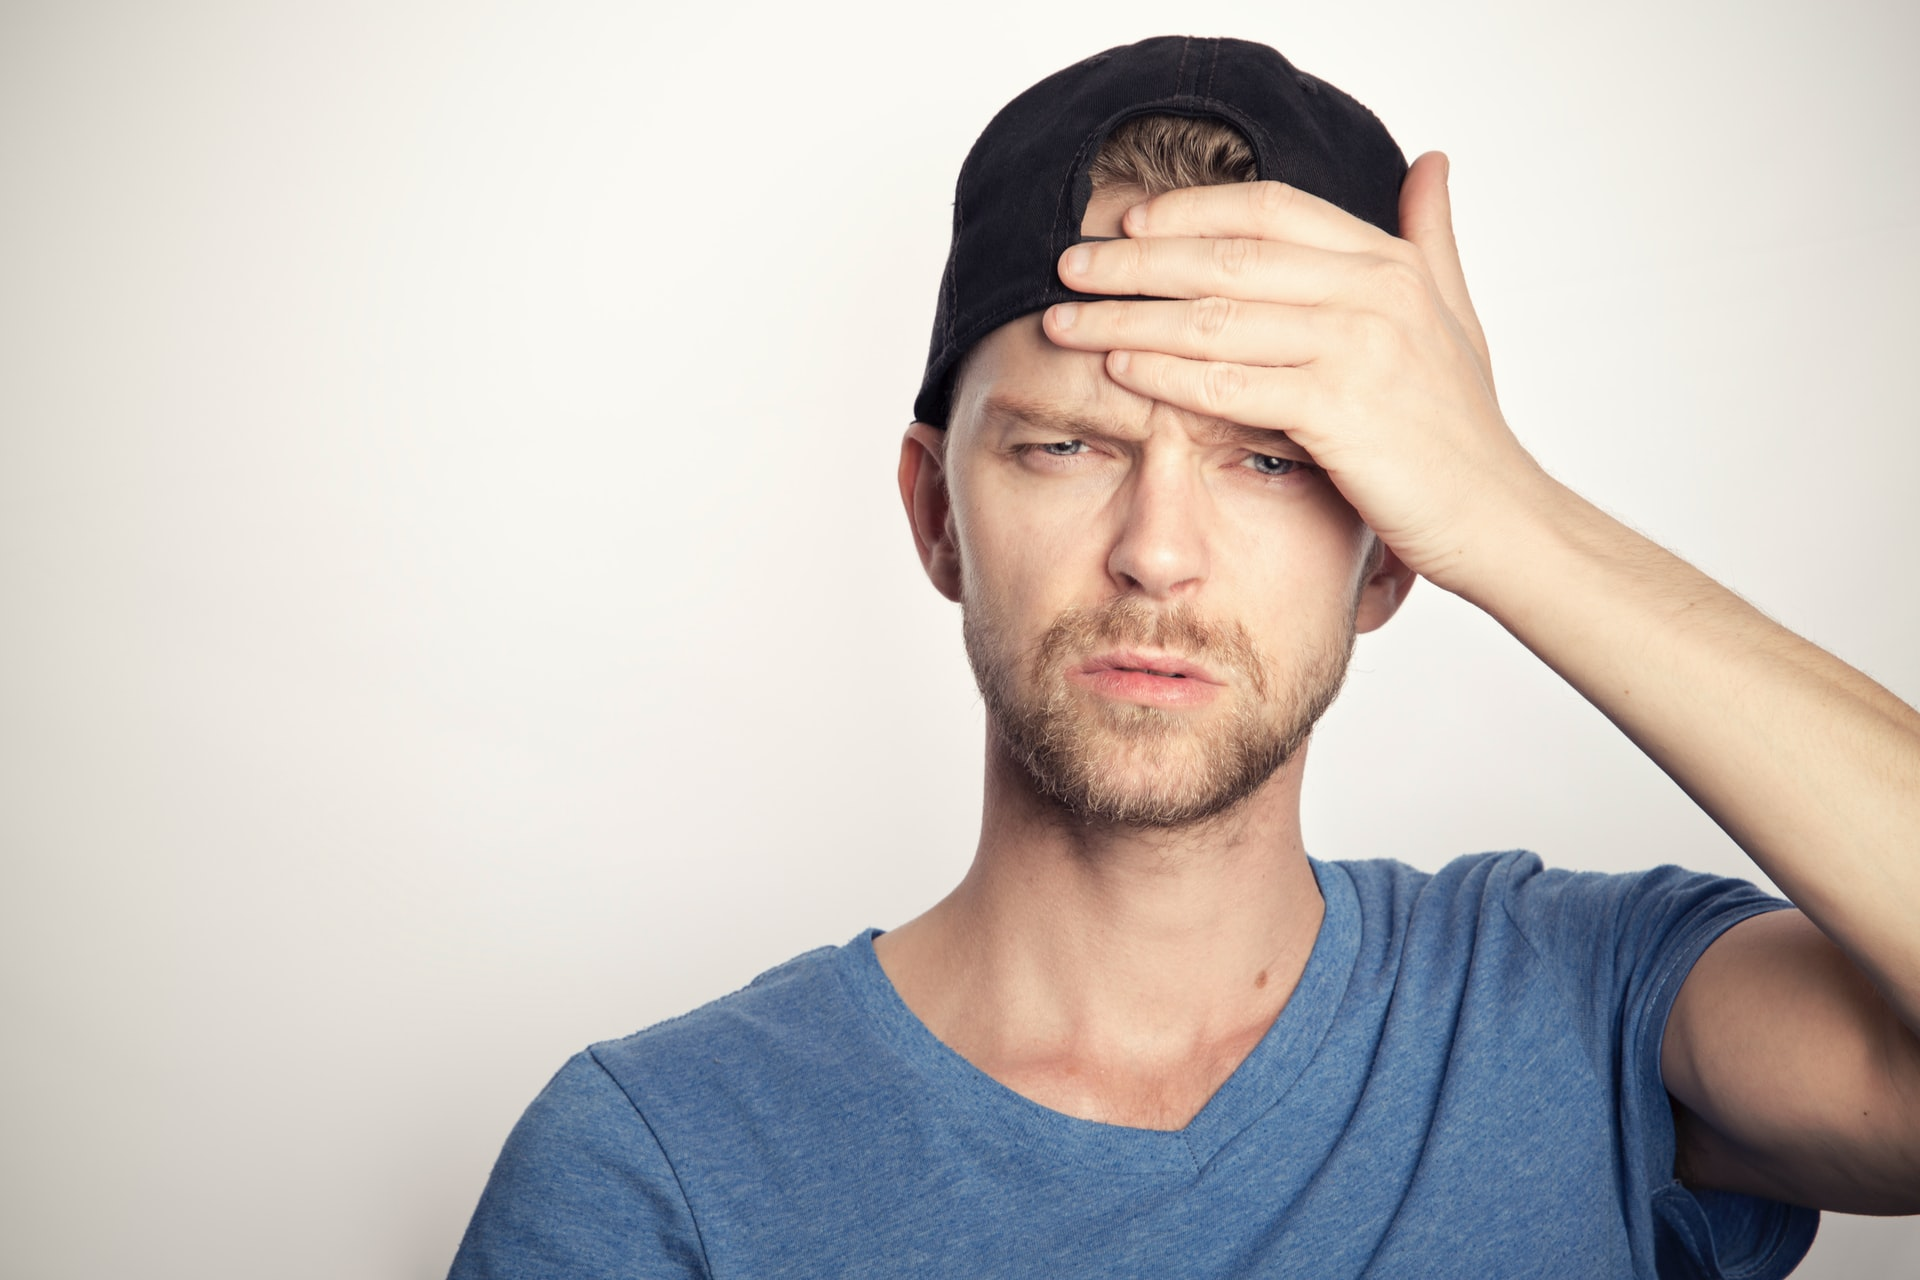 What is a headache and migraine?What is a headache and migraine?